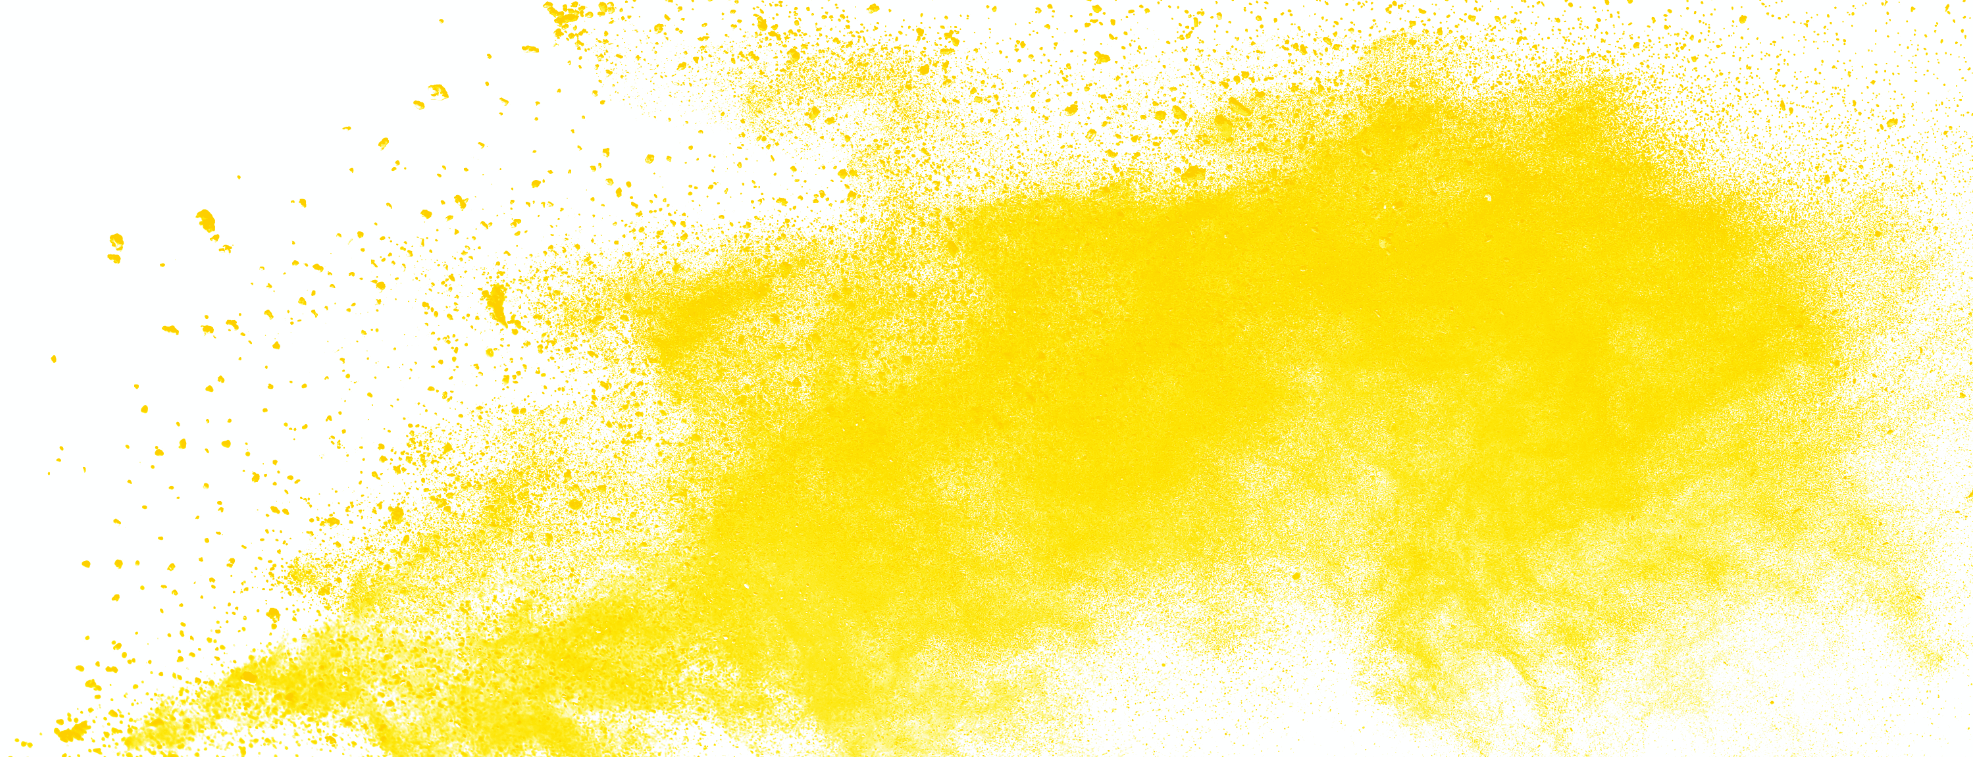 Rich yellow paint over white background